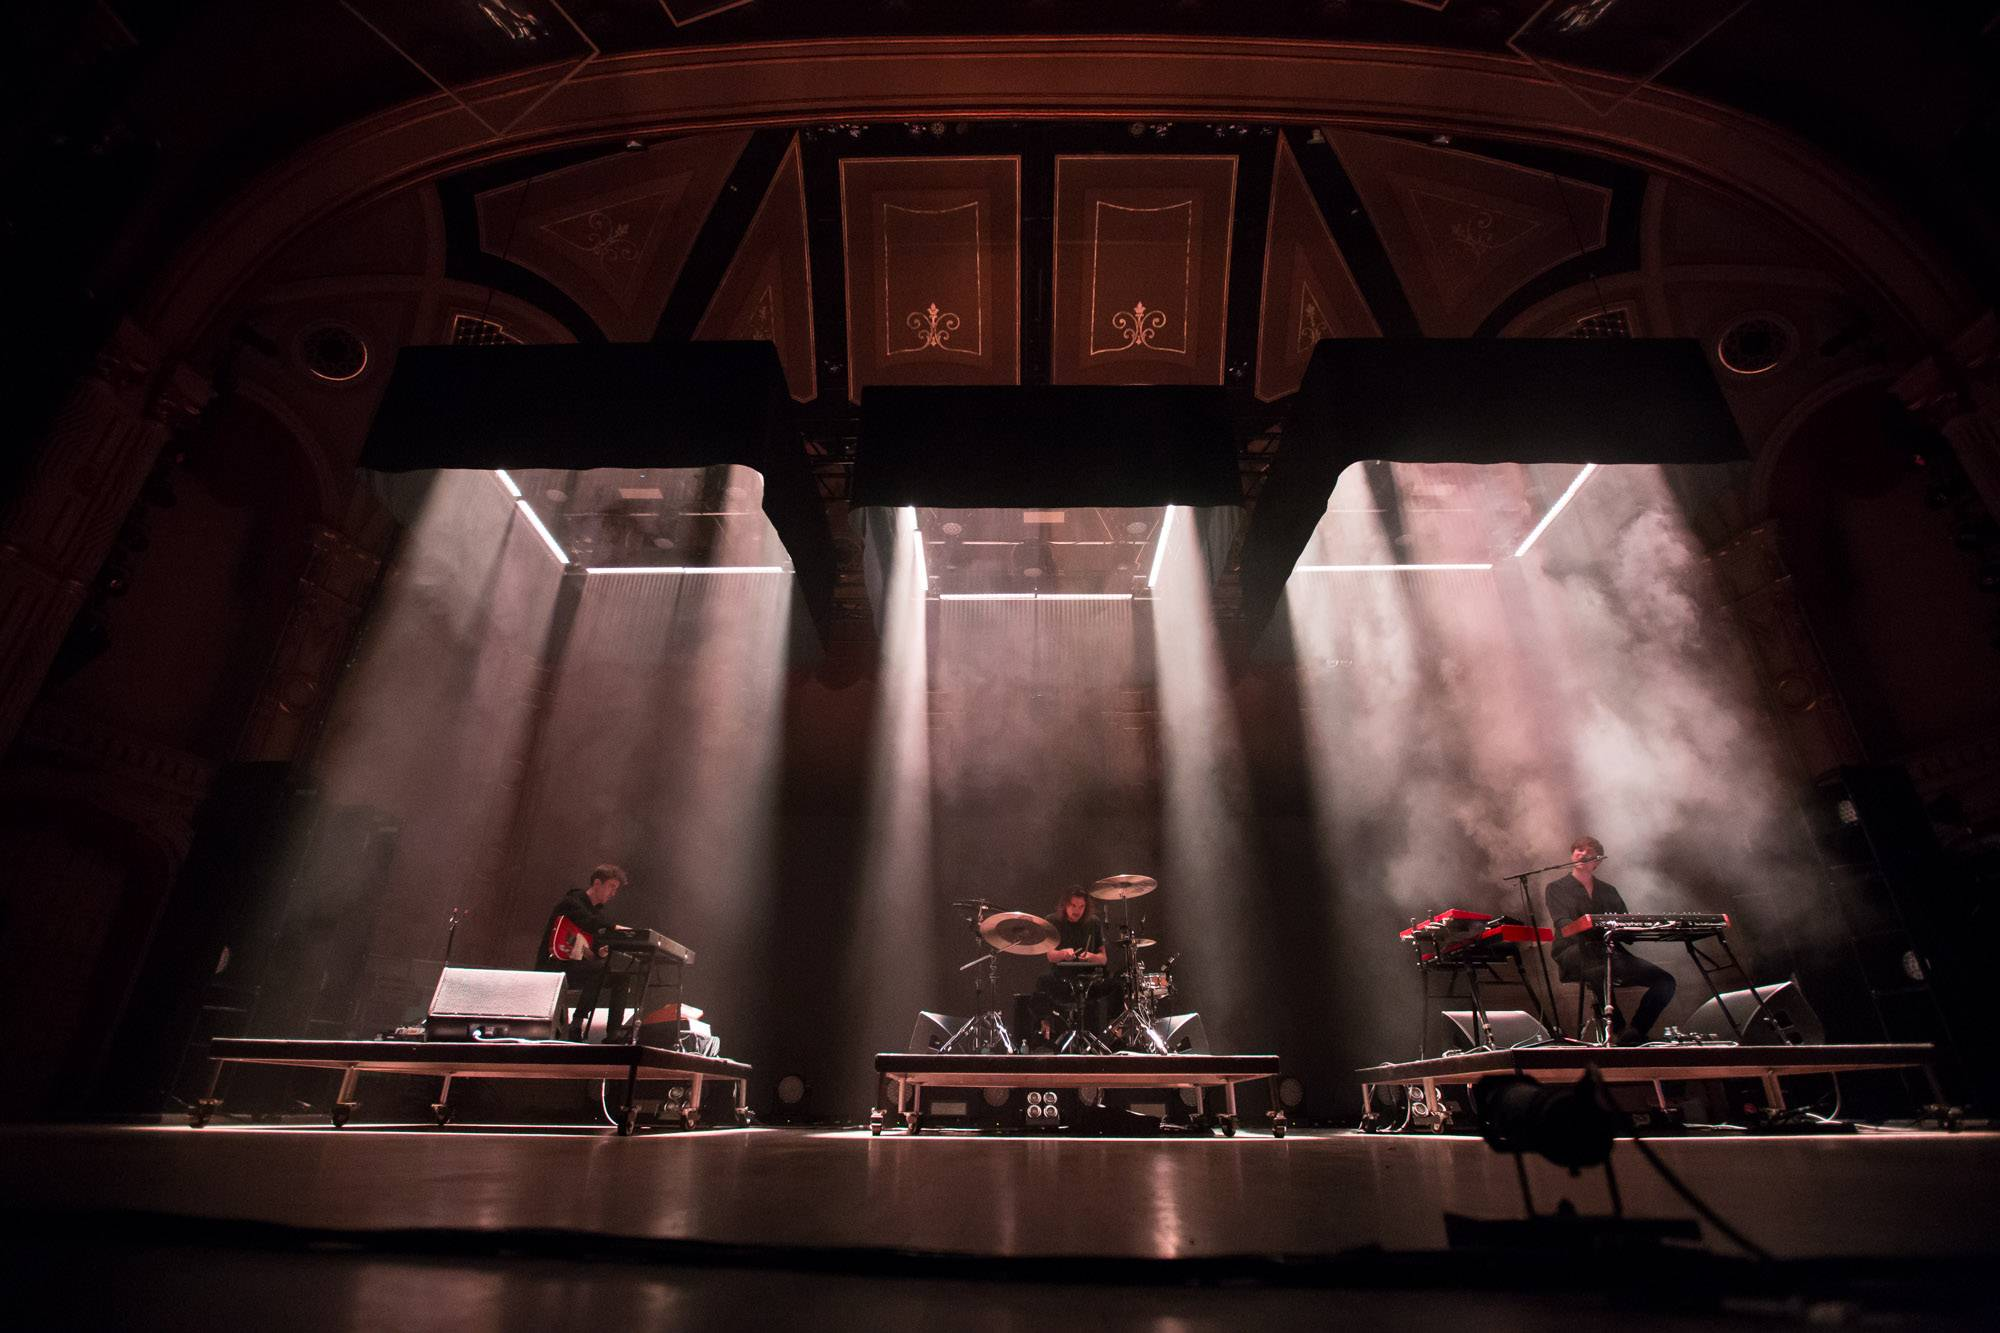 James Blake at the Orpheum Theatre, Vancouver, Oct. 13 2016. Kirk Chantraine photo.